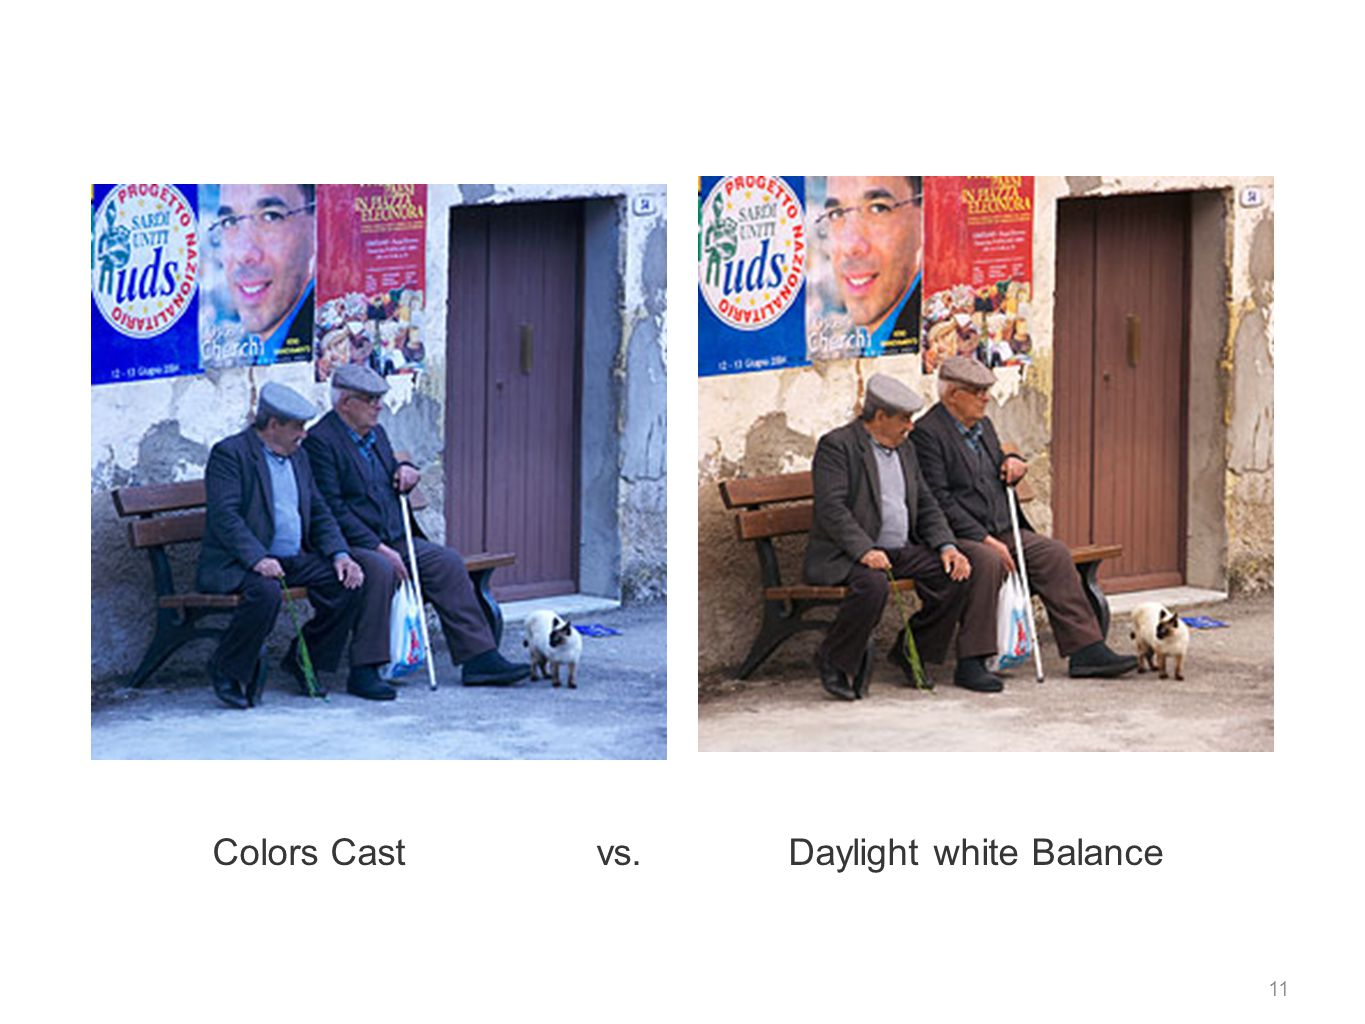 Colors Cast vs. Daylight white Balance